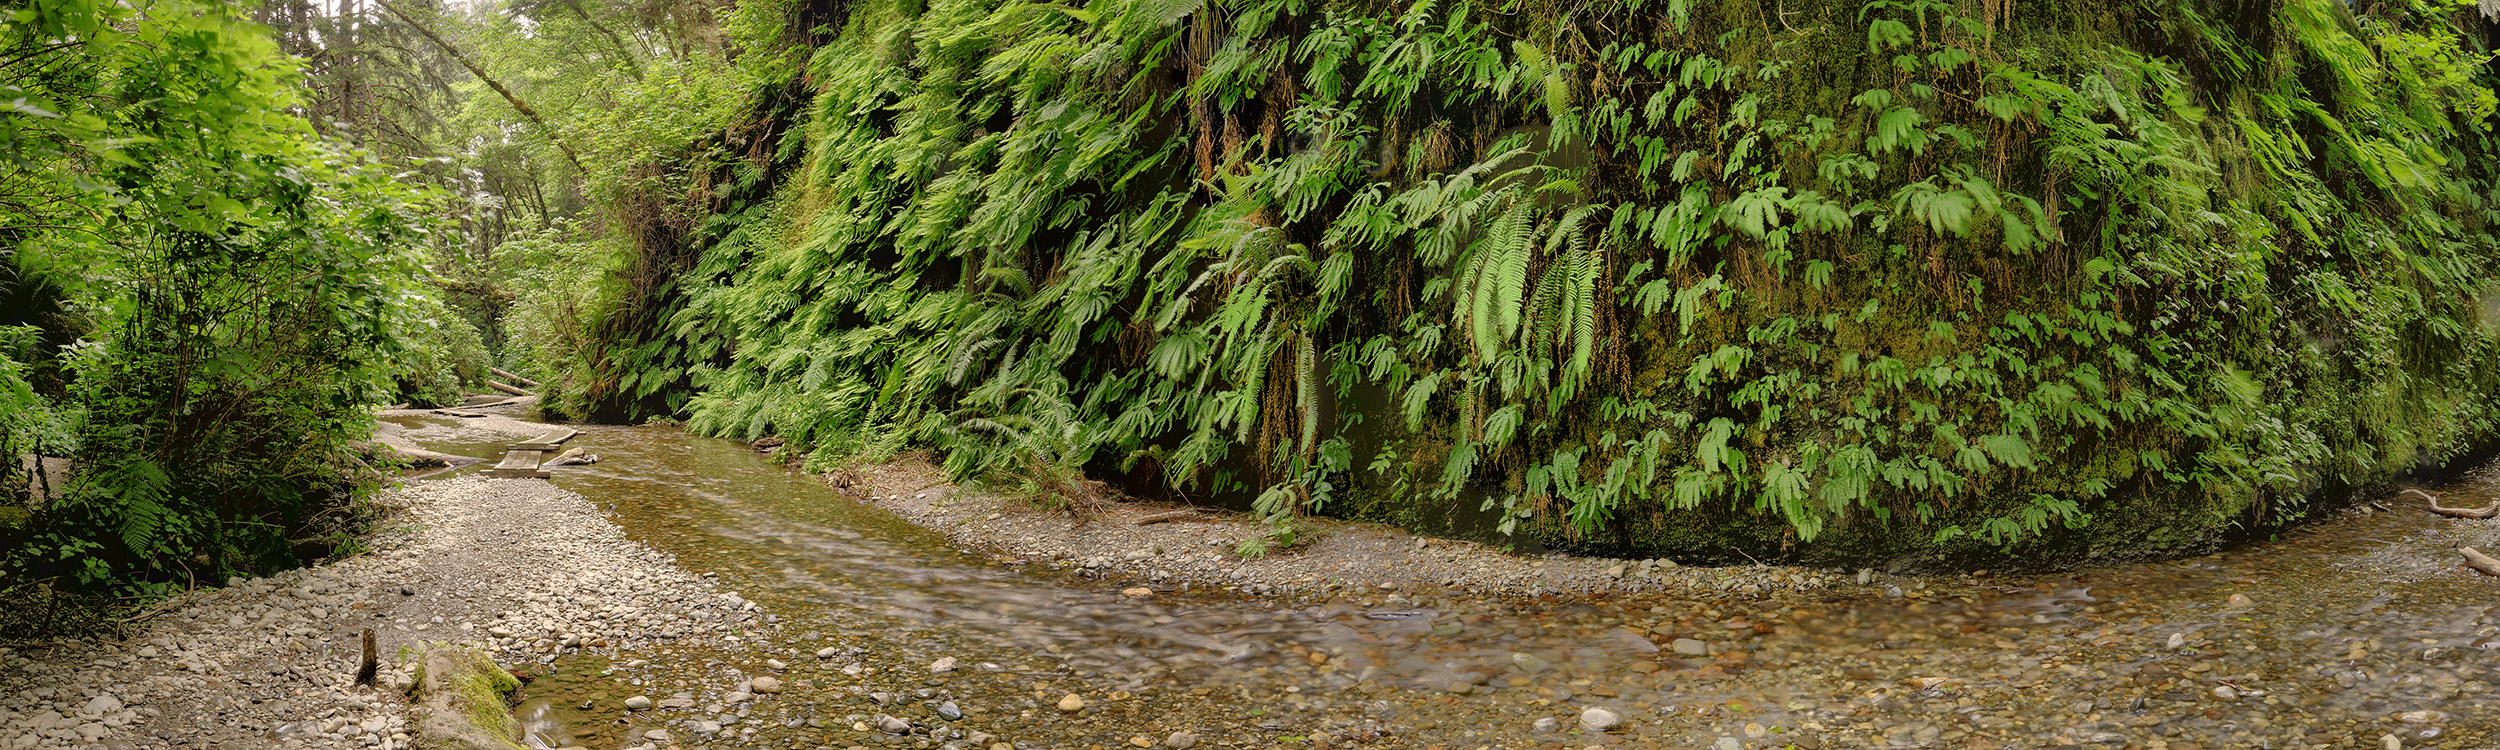 Fern Canyon #2